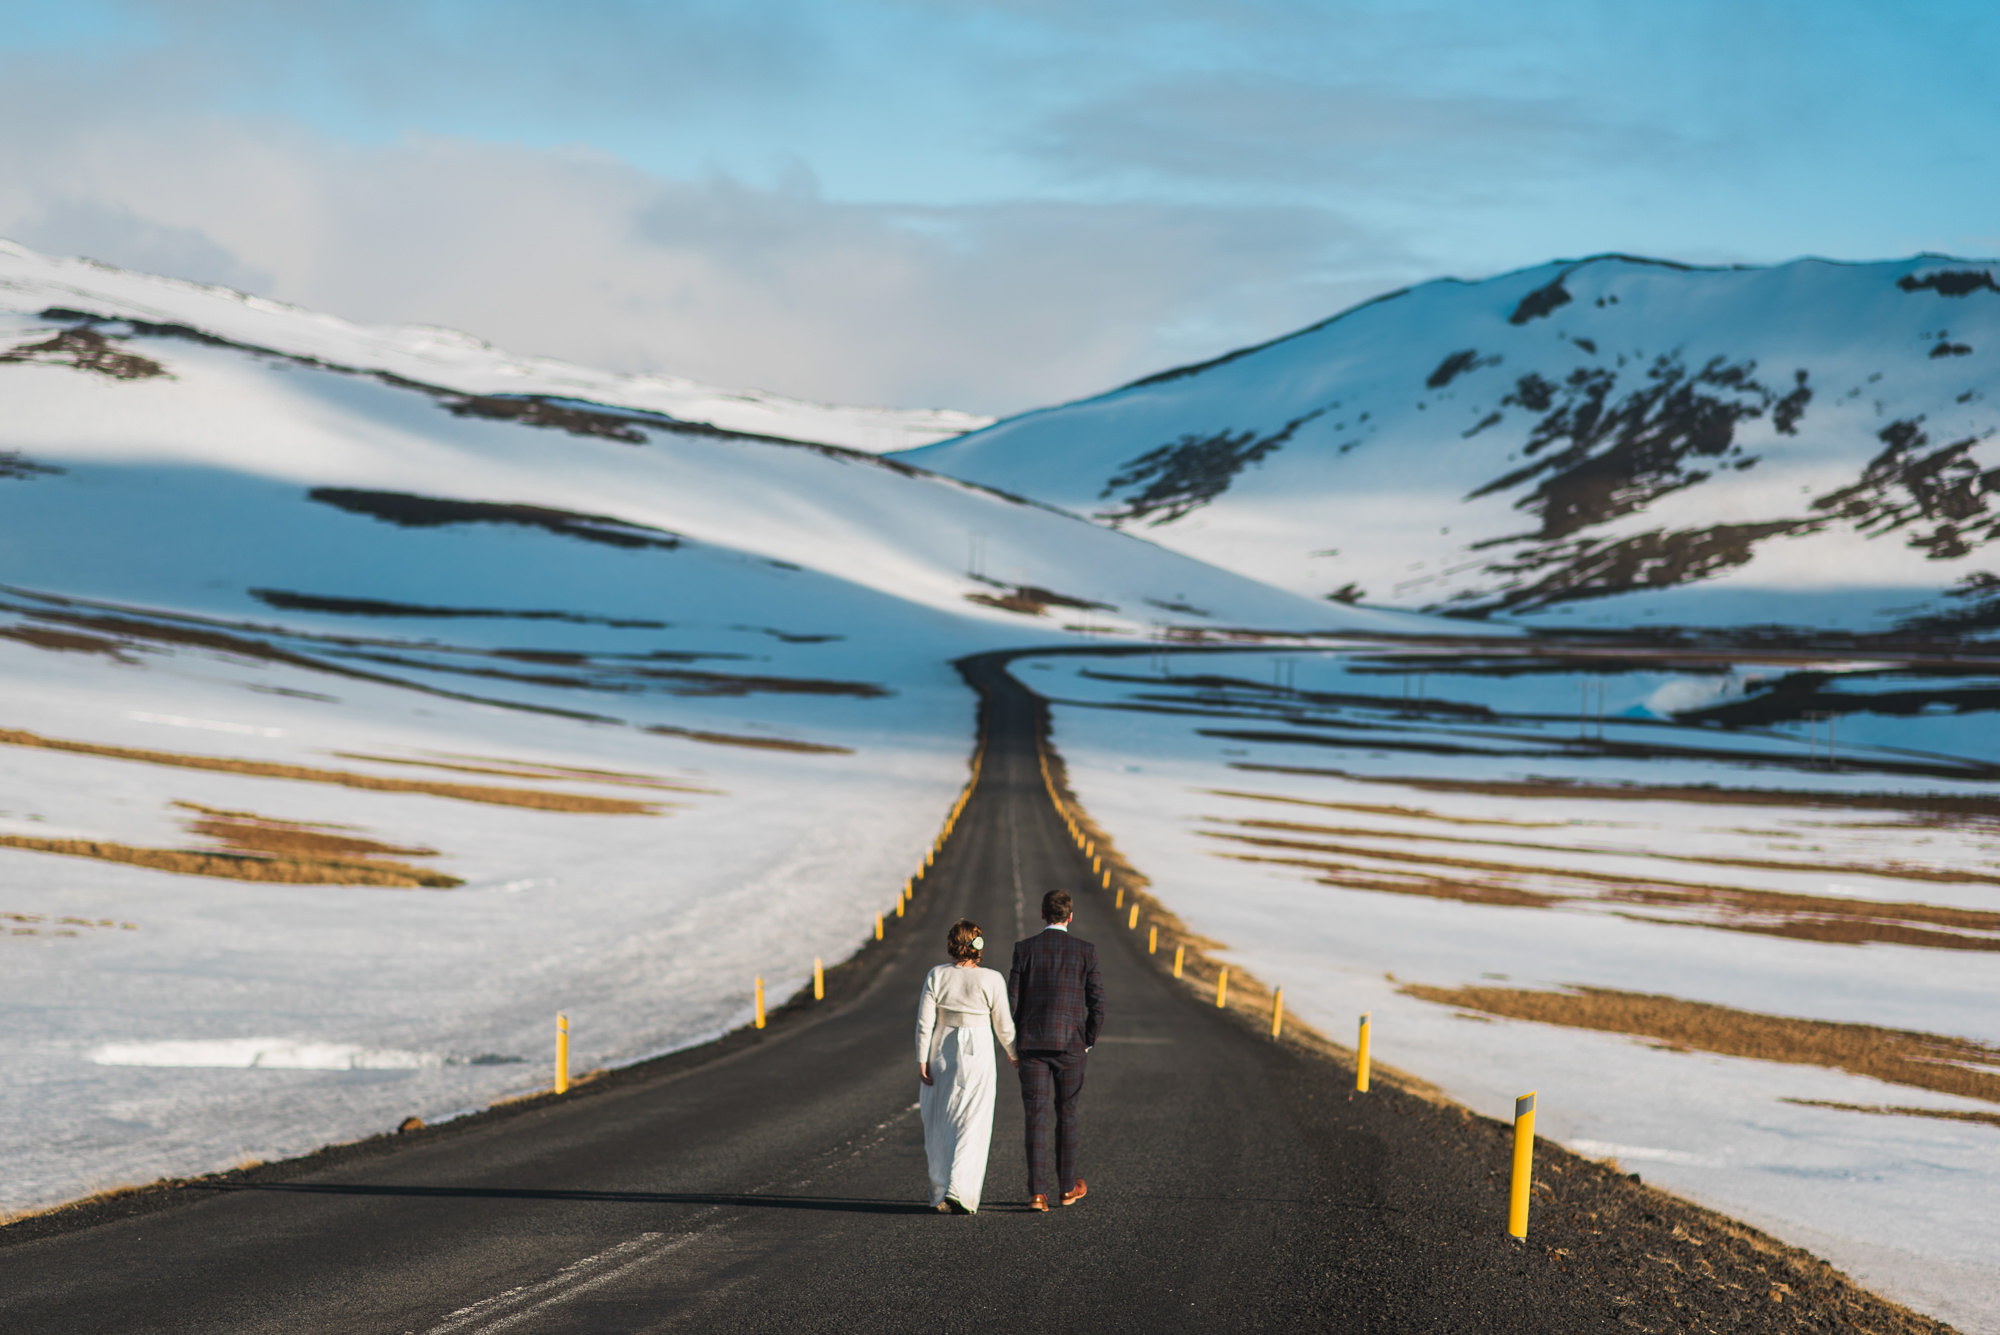 Couple walking down snowy tundra highway photo by Nordica Photography